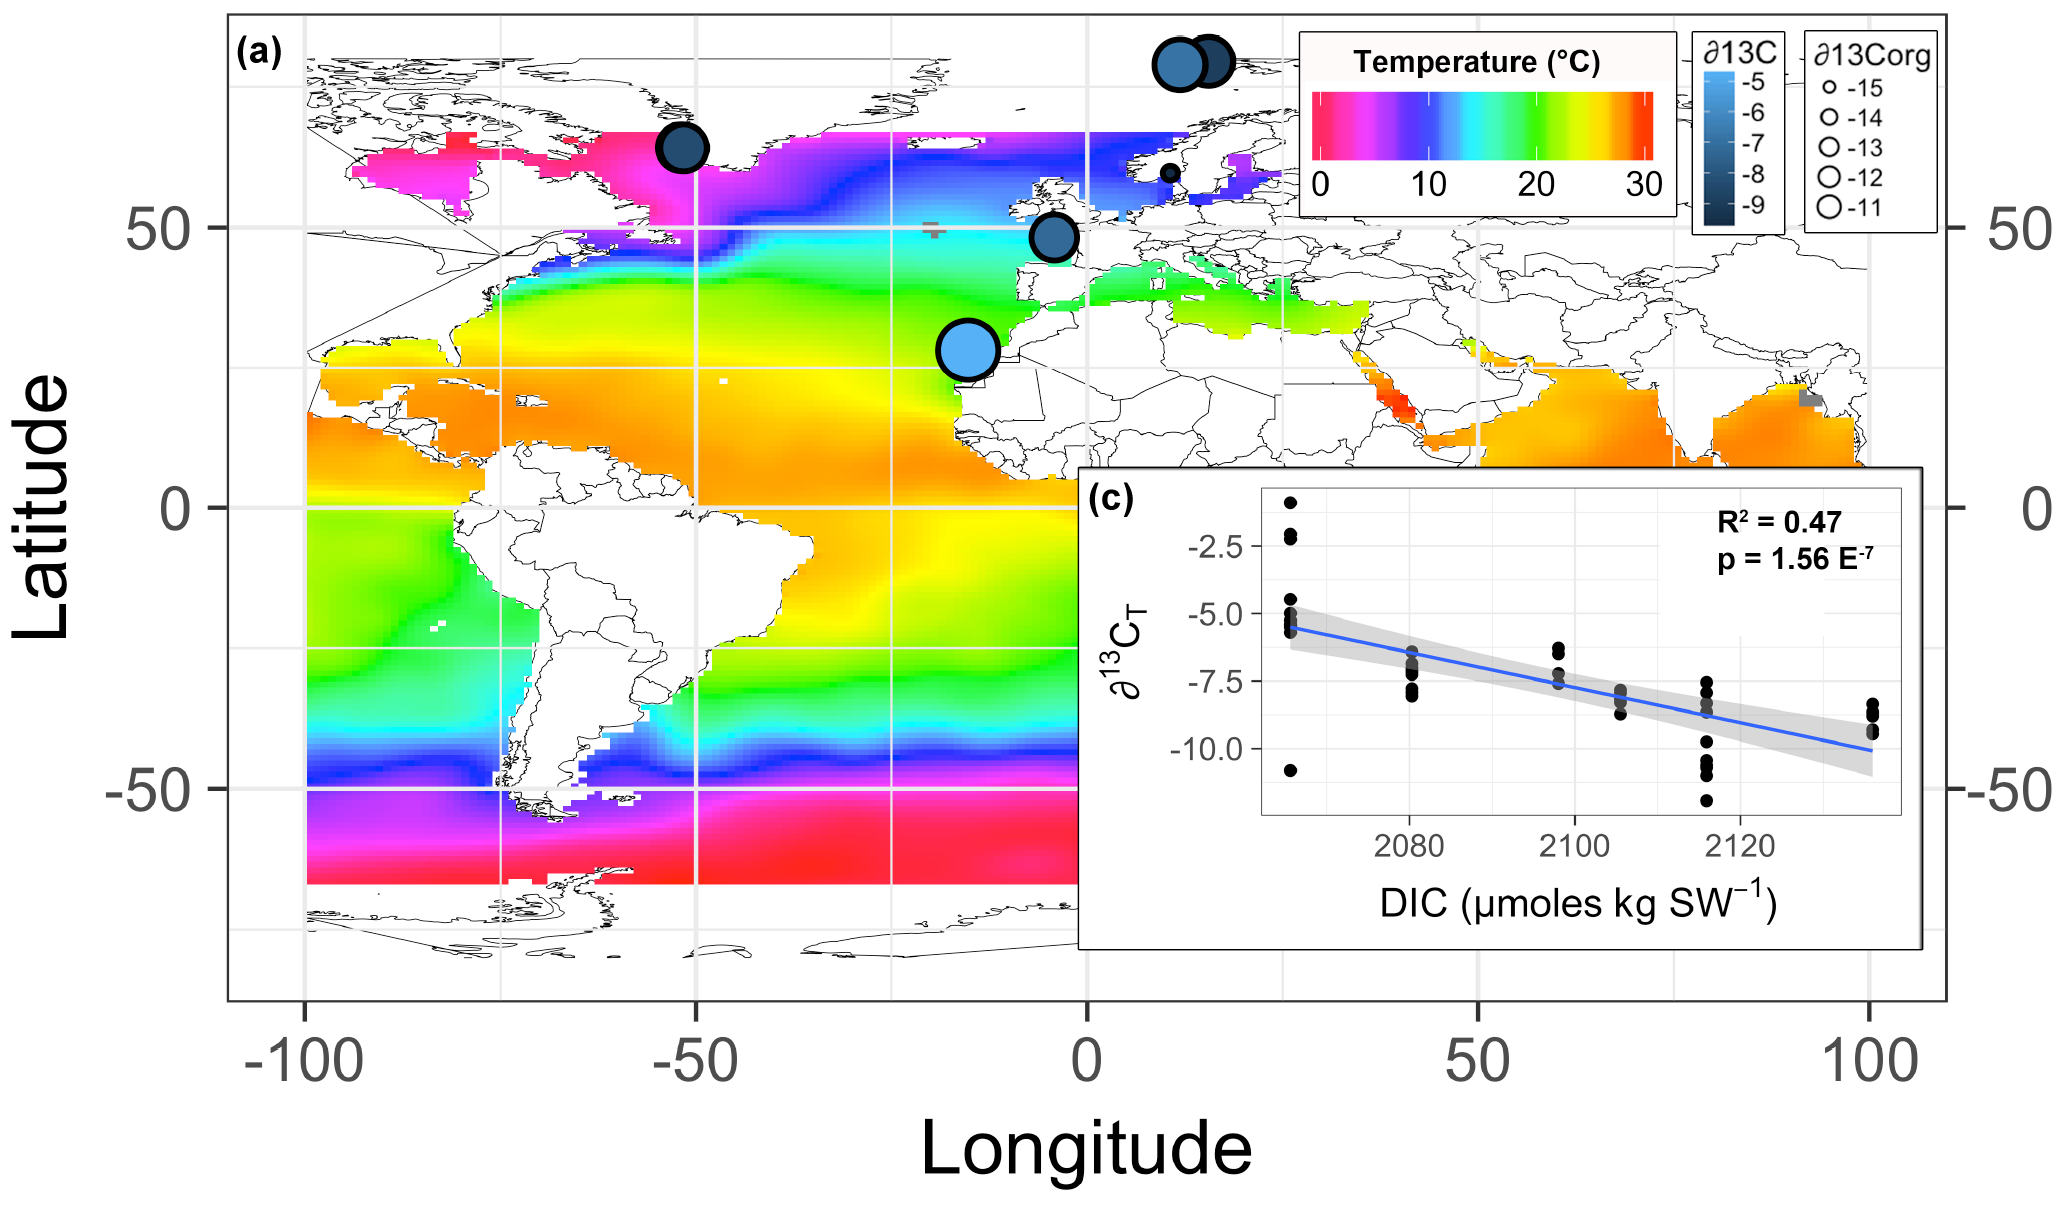 BG - Latitudinal trends in stable isotope signatures and